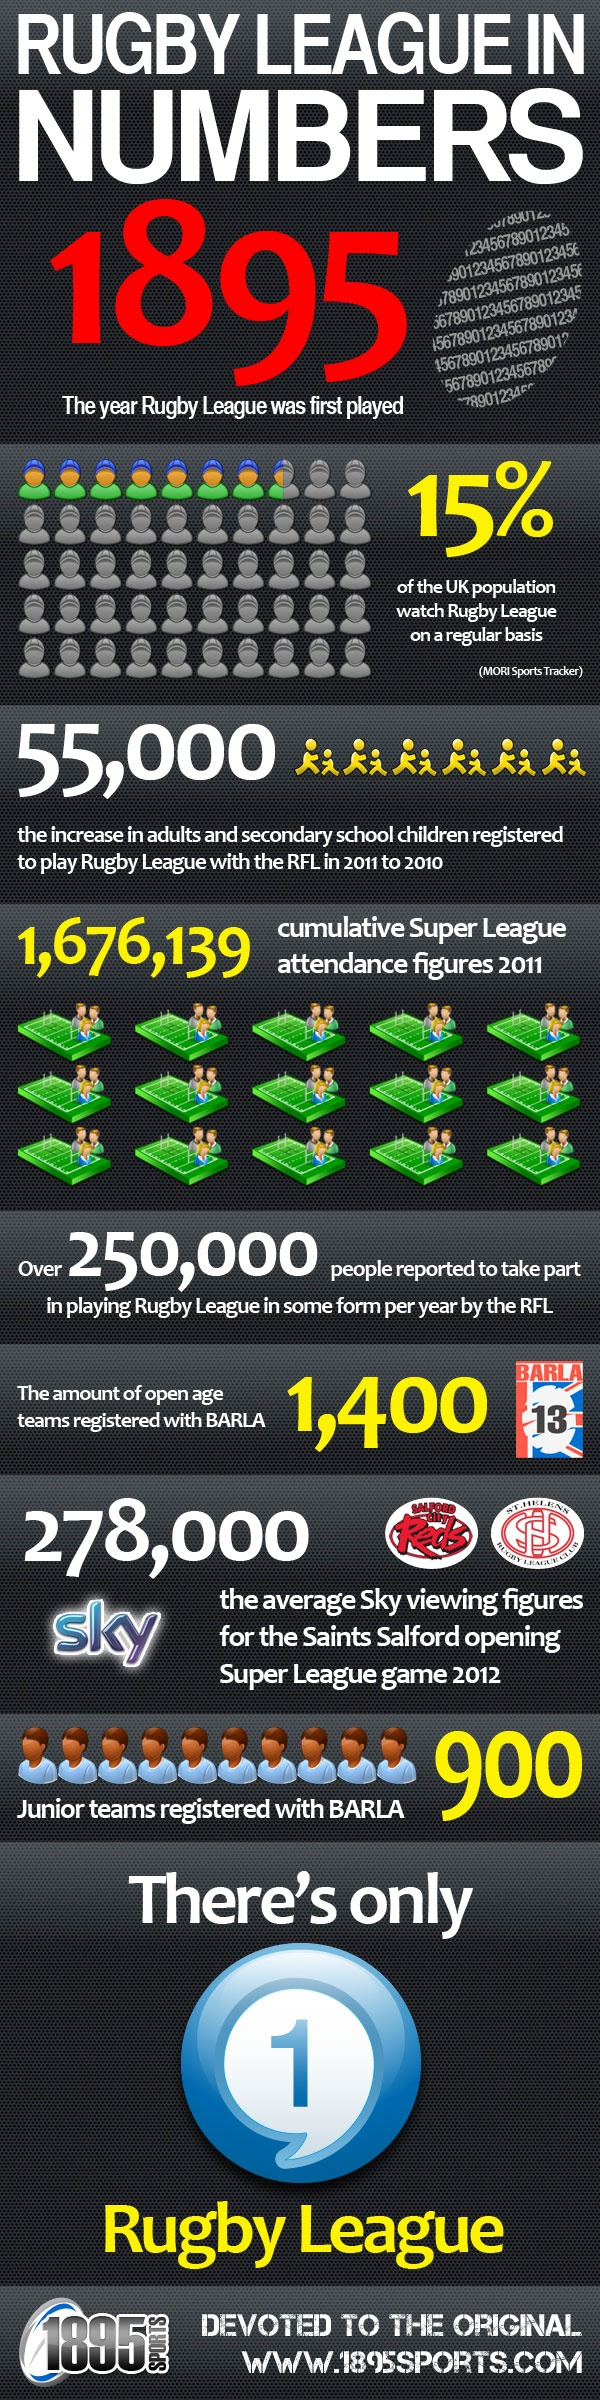 Rugby League in numbers infographic